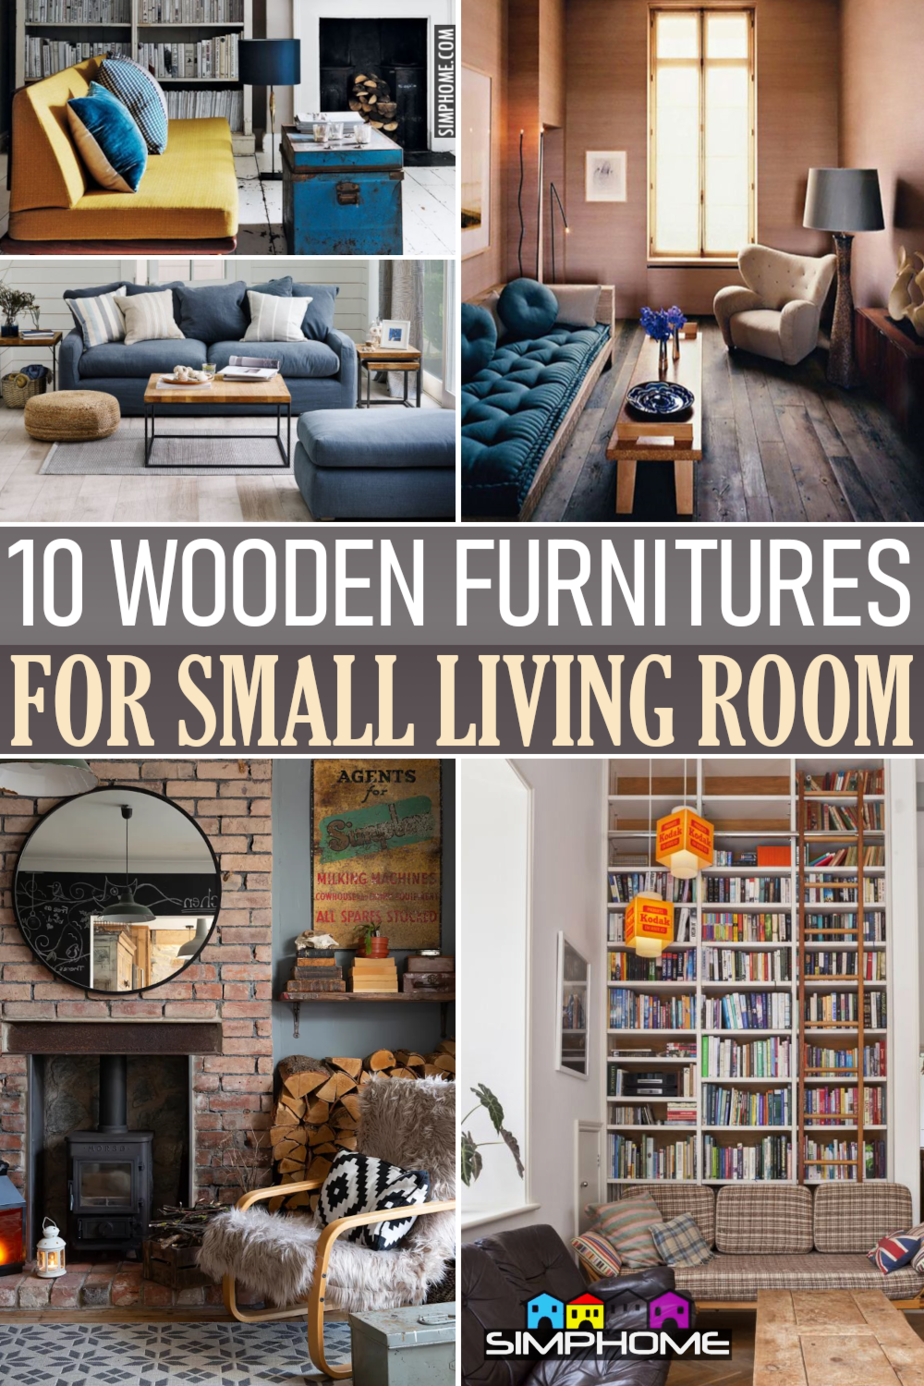 Wooden Furniture for living room via Simphome.comFeatured